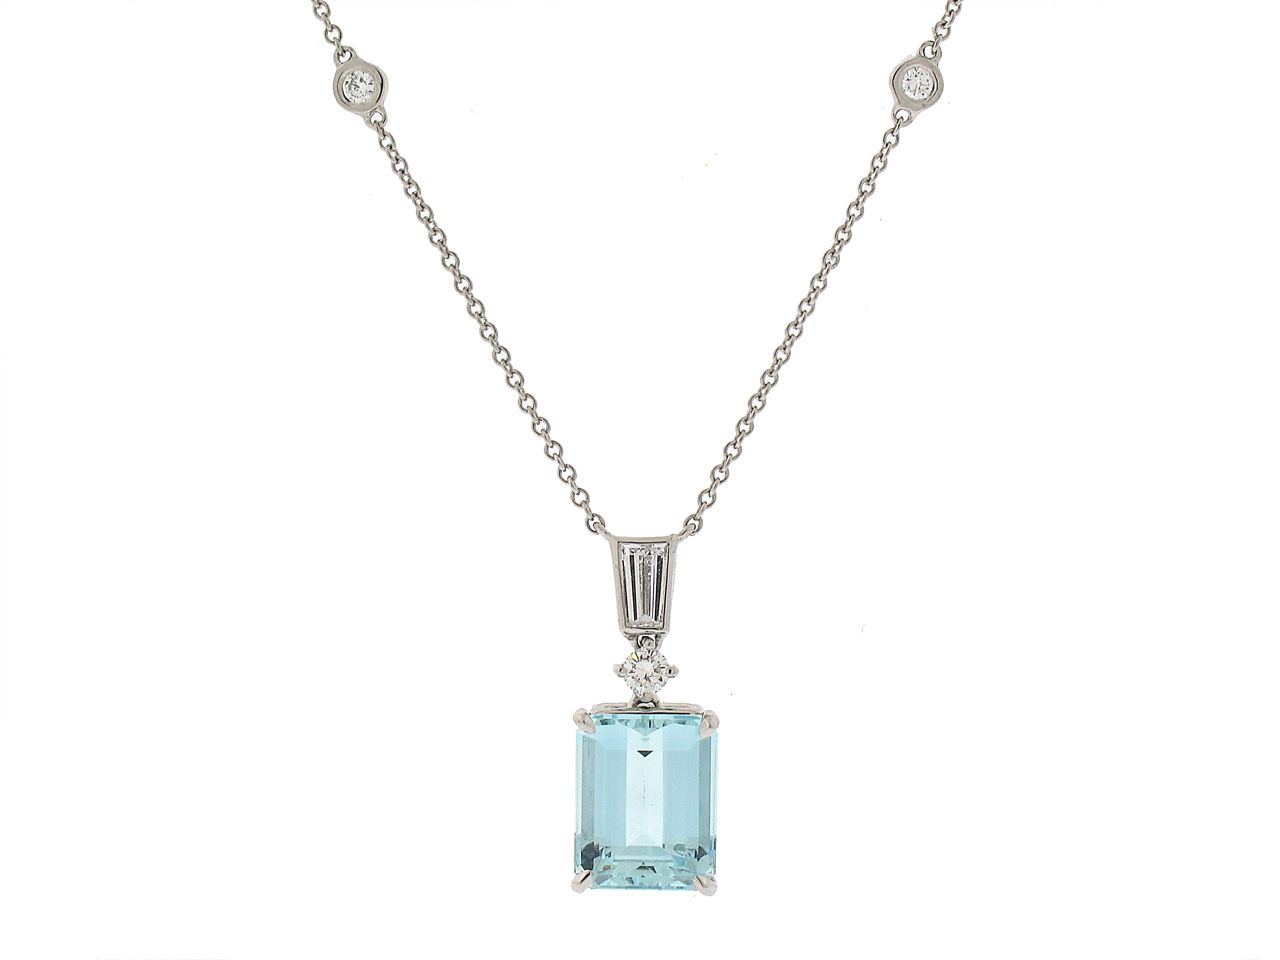 6851c01c277a Tiffany and Co. Aquamarine Pendant in Platinum - Beautiful Blue from  Beladora